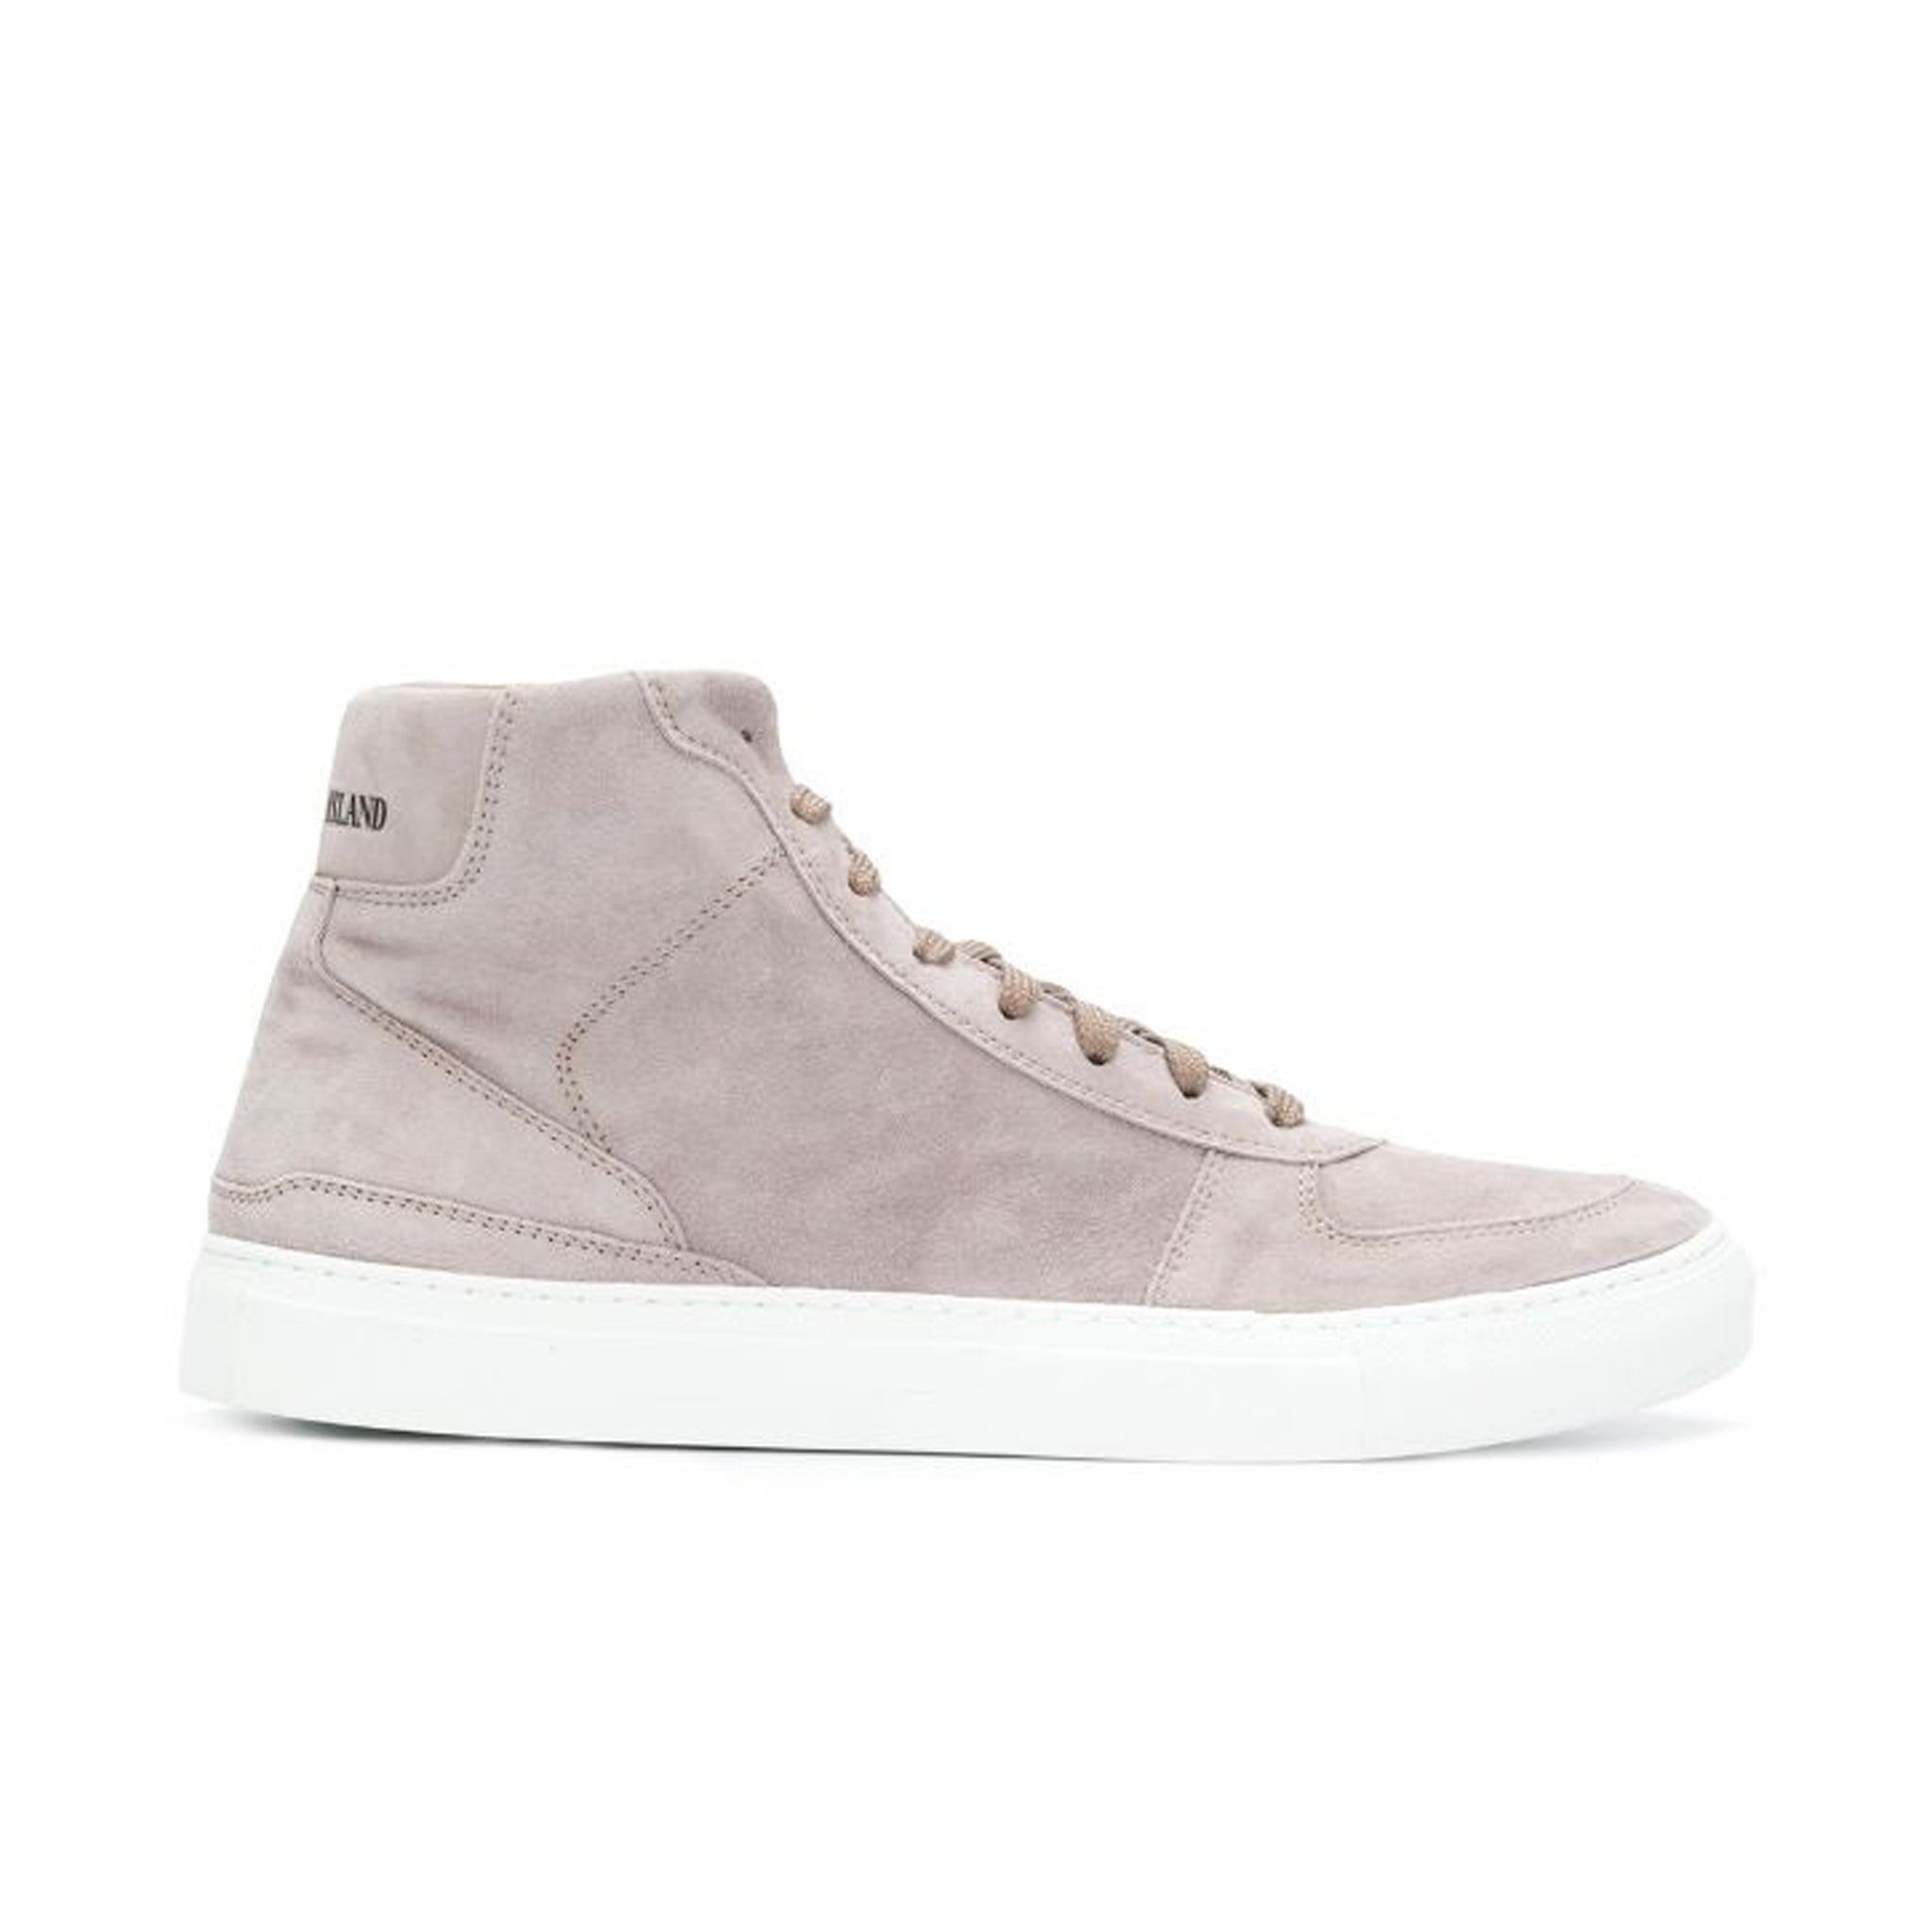 Stone Island Suede Sneakers